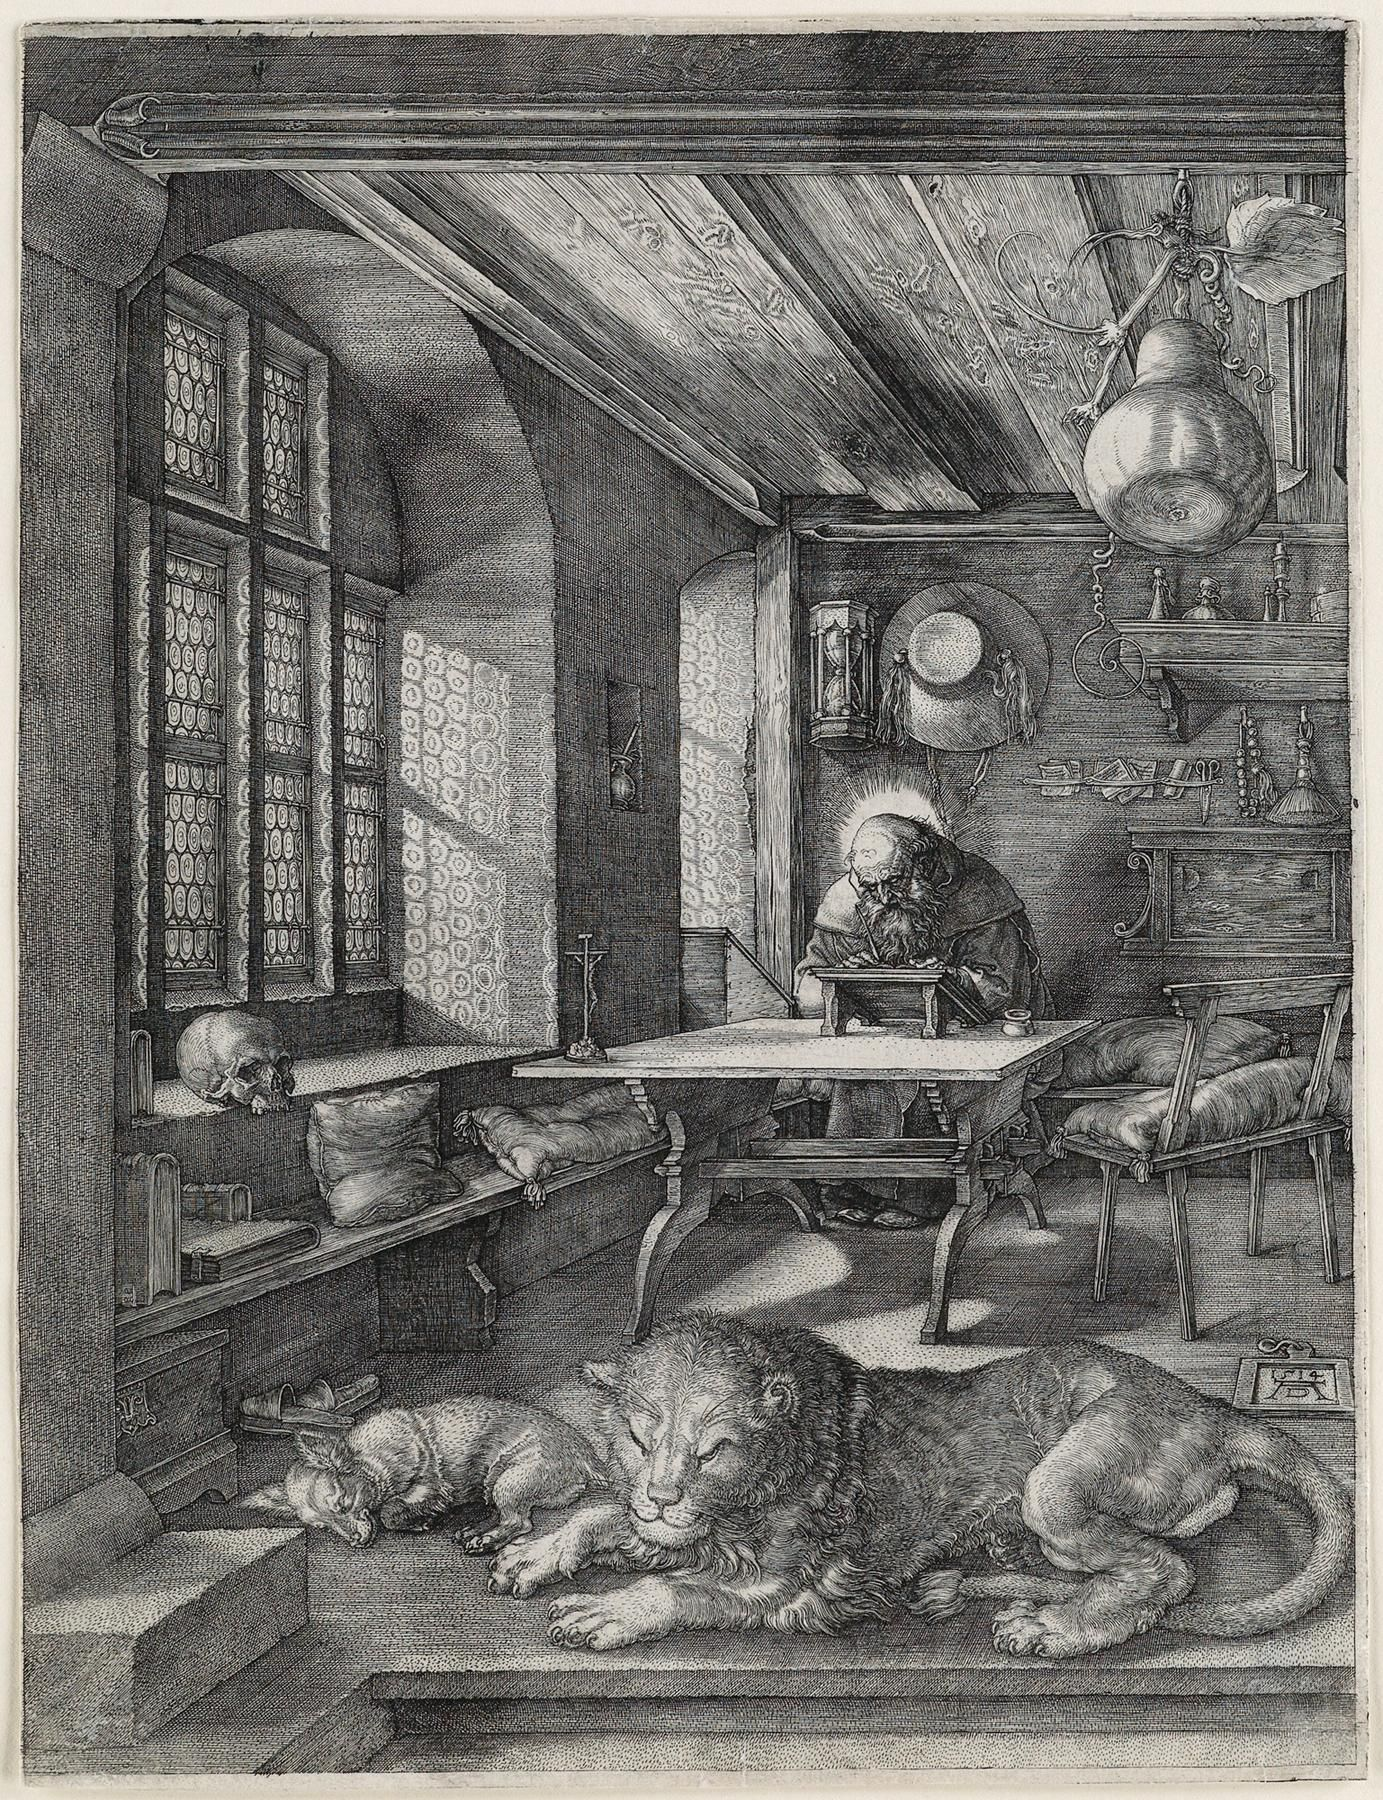 Albrecht Dürer St Jerome in His Study engraving 1514 from the